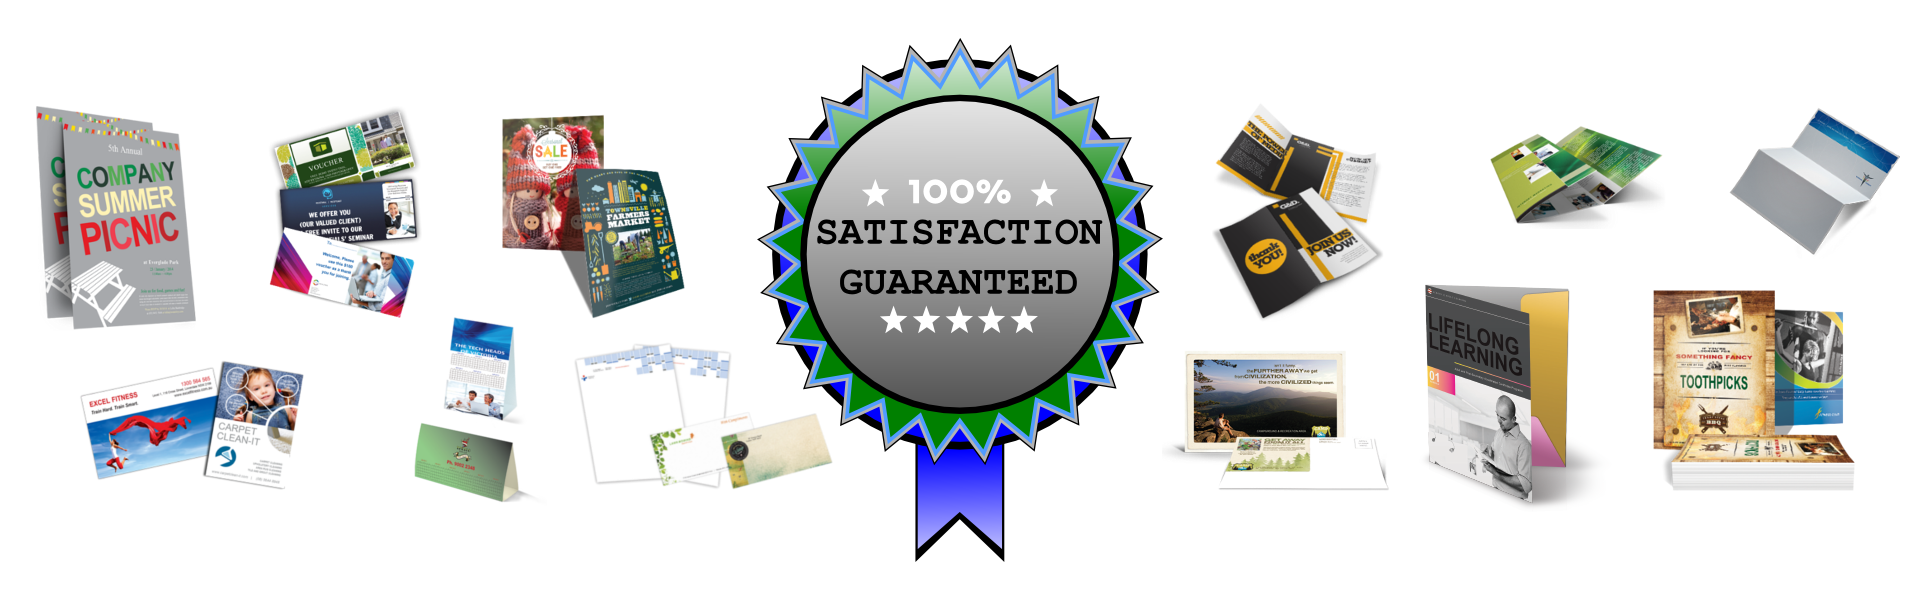 Online Printing Portal Products - 100% satisfaction guarantee